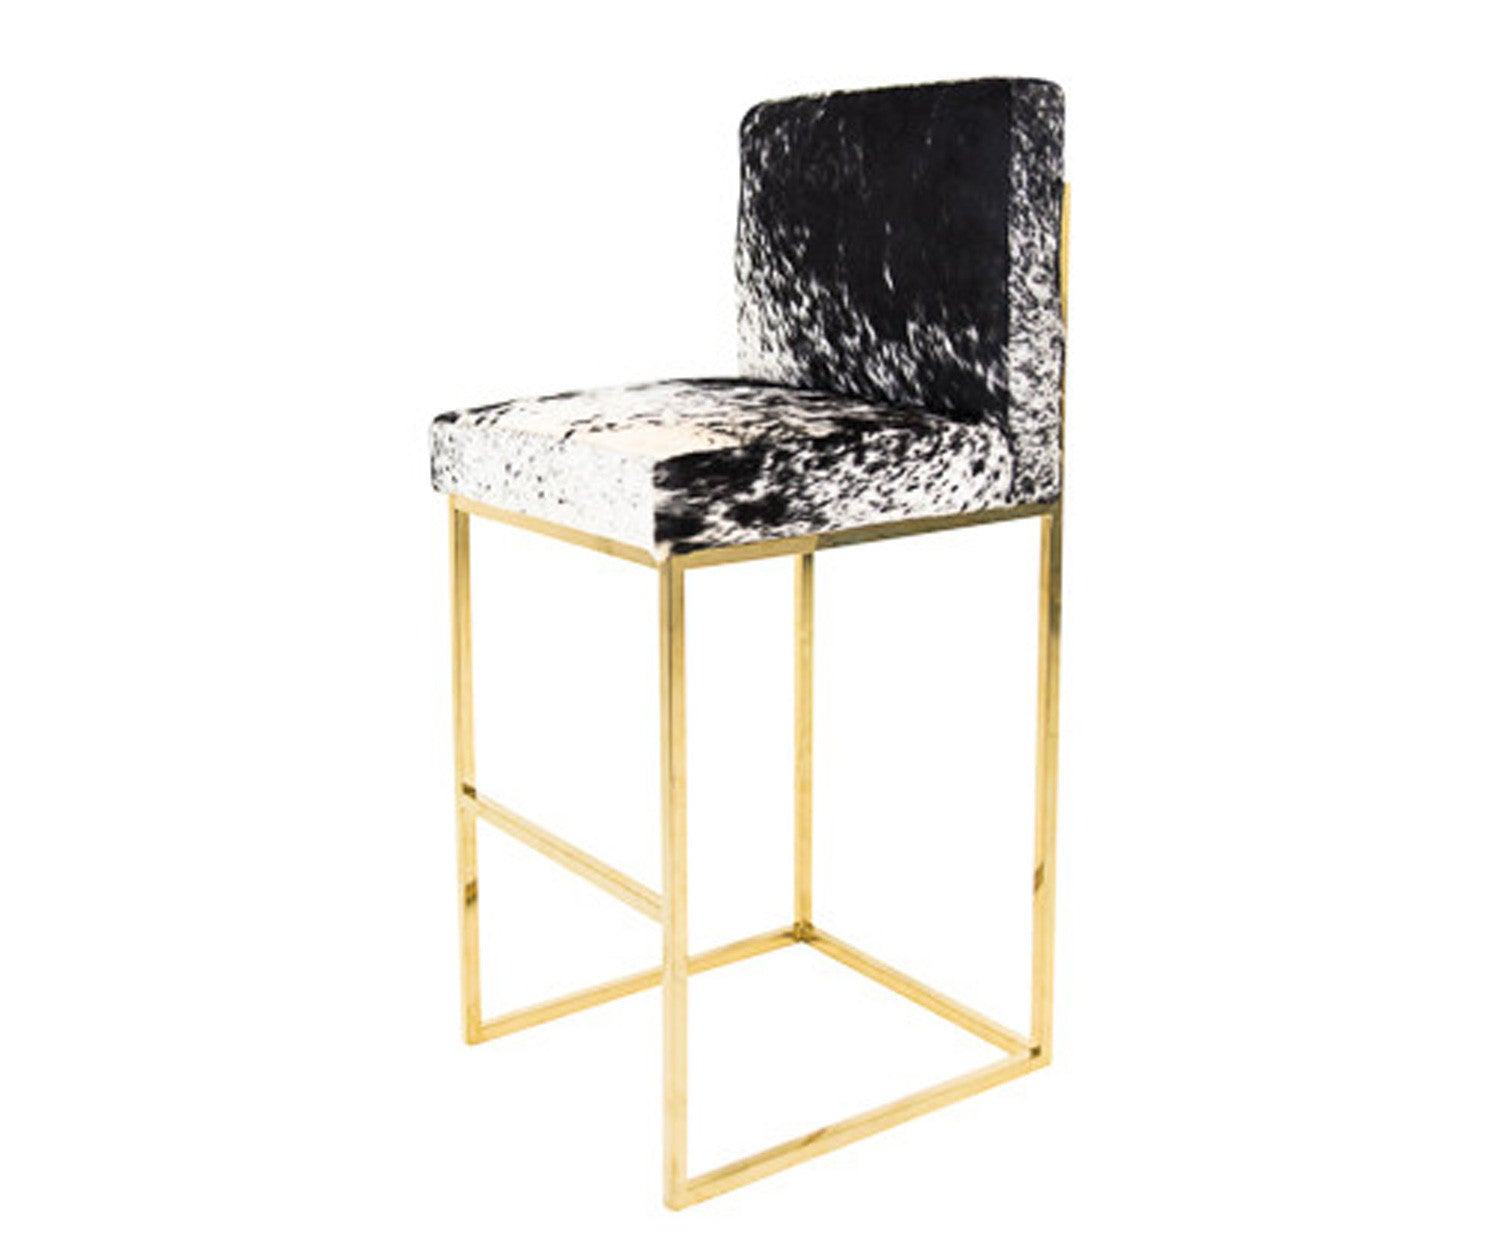 Bar Stool In B Amp W Spotted Cowhide With Brass Legs Modshop